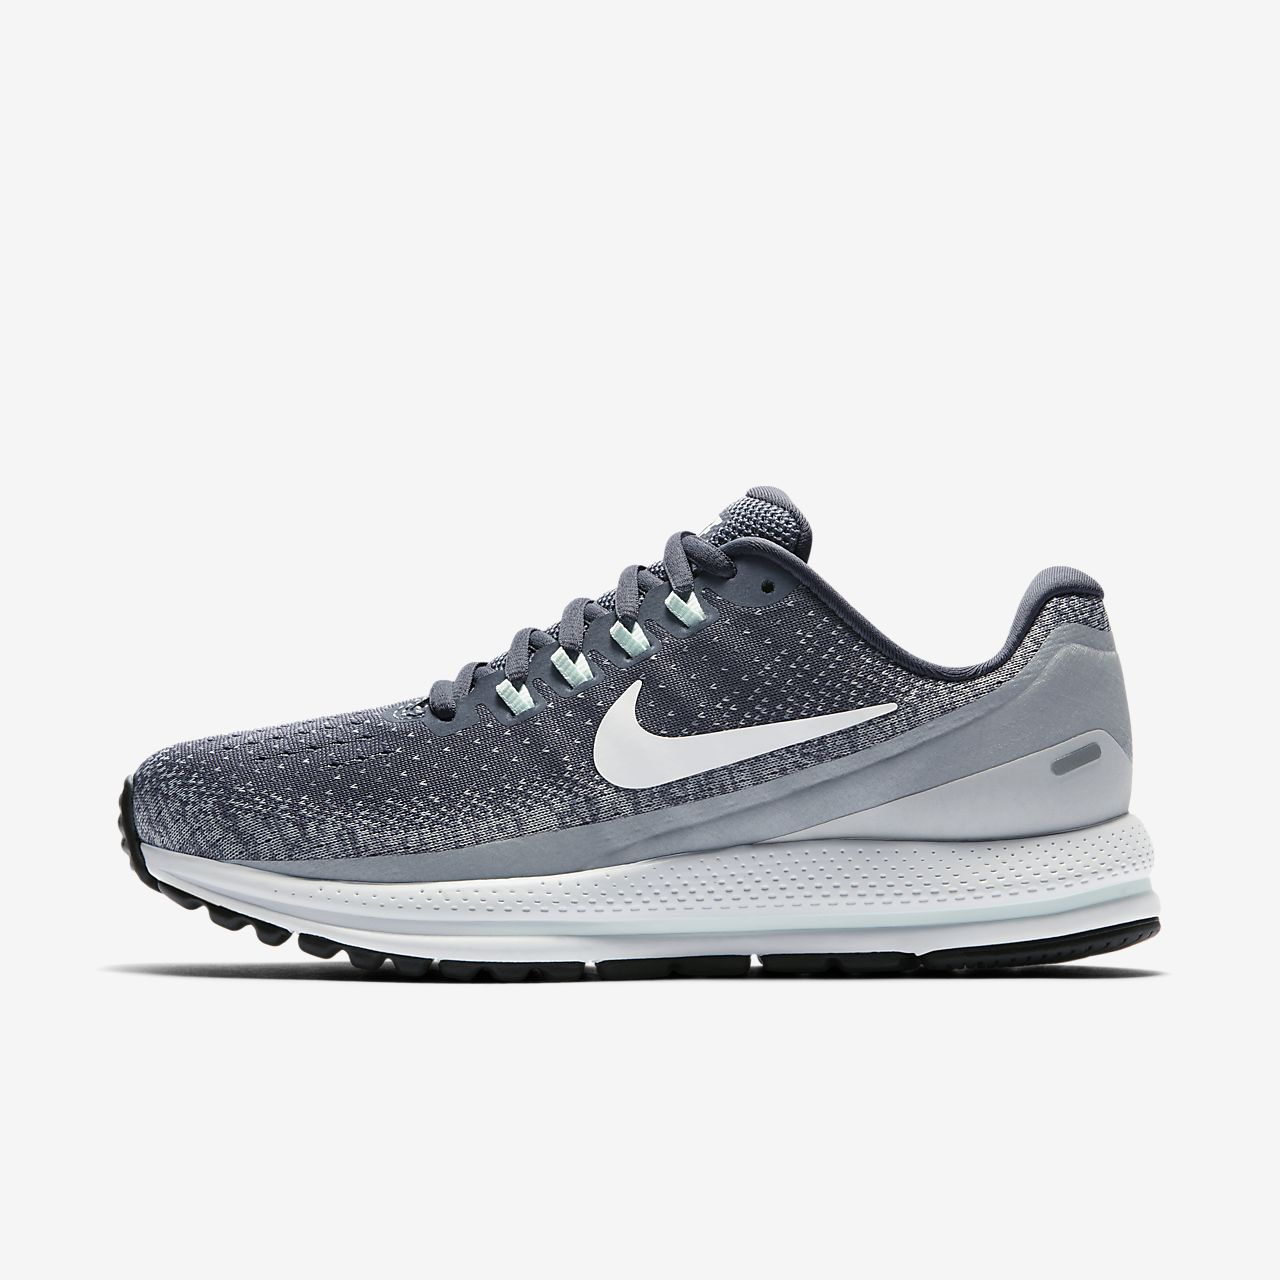 brand new b3c8c c60d2 ... Chaussure de running Nike Air Zoom Vomero 13 pour Femme